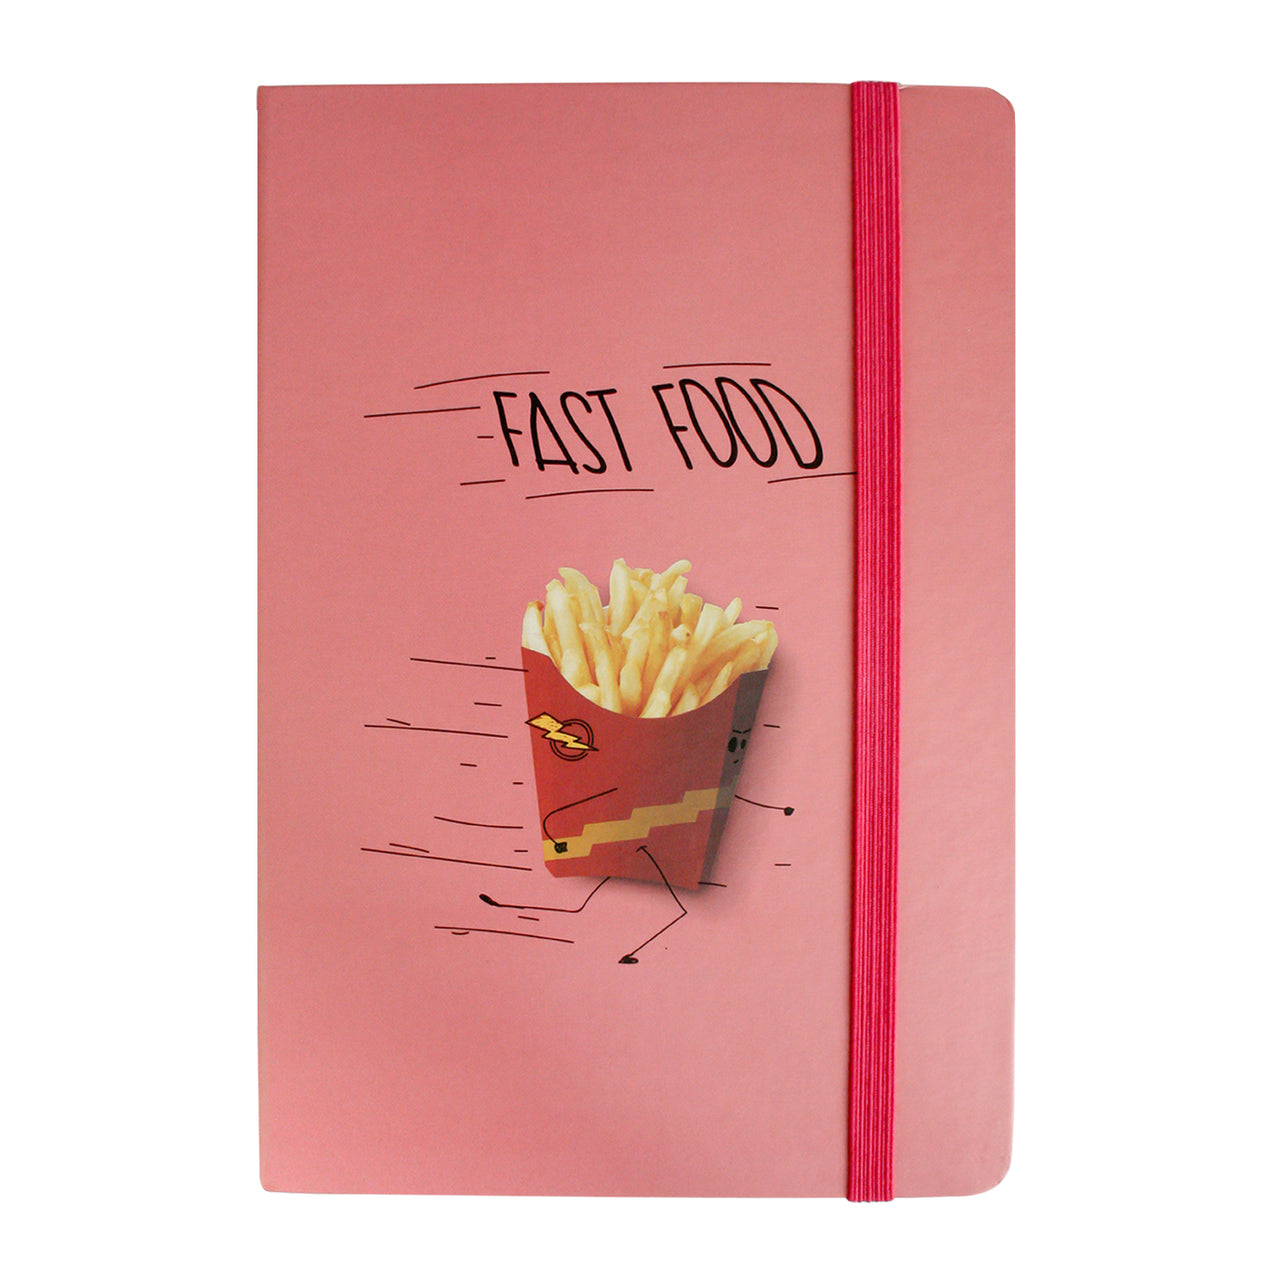 A5 Fast Food Notebook - Pink/Red - EMARTBUY